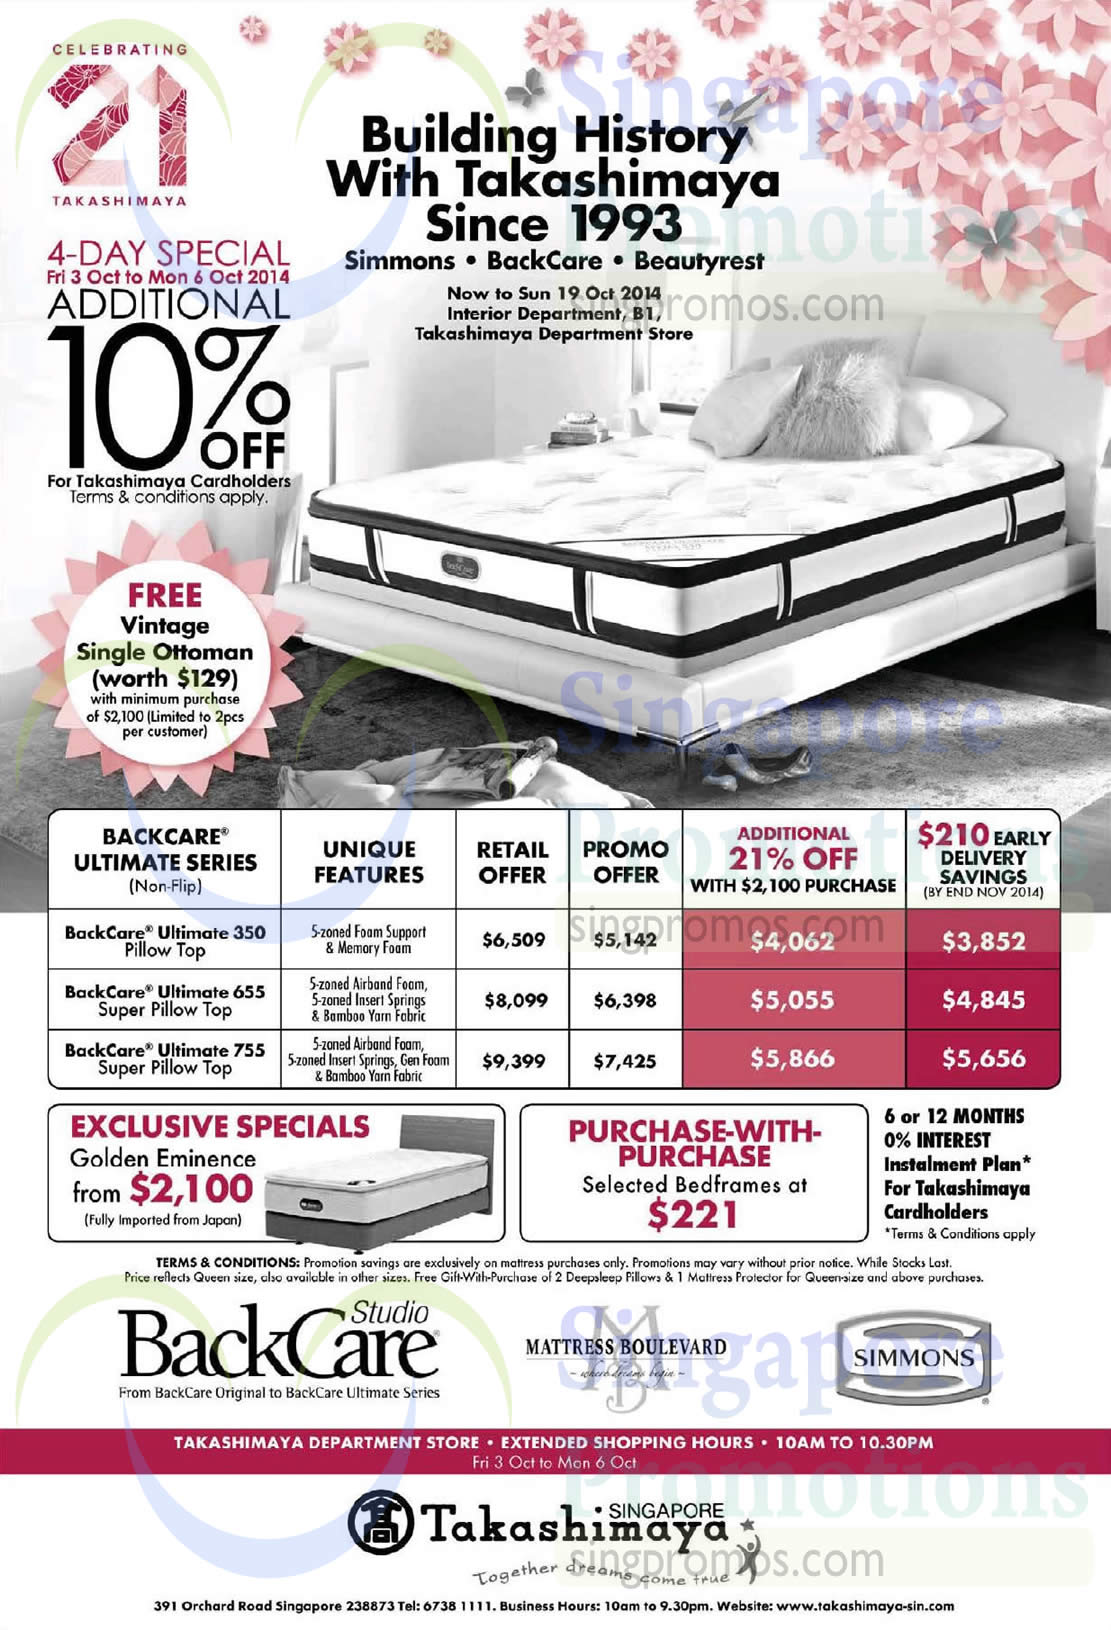 Simmons BackCare Ultimate 350 Mattress, Simmons BackCare Ultimate 655 Mattress, Simmons BackCare Ultimate 755 Mattress